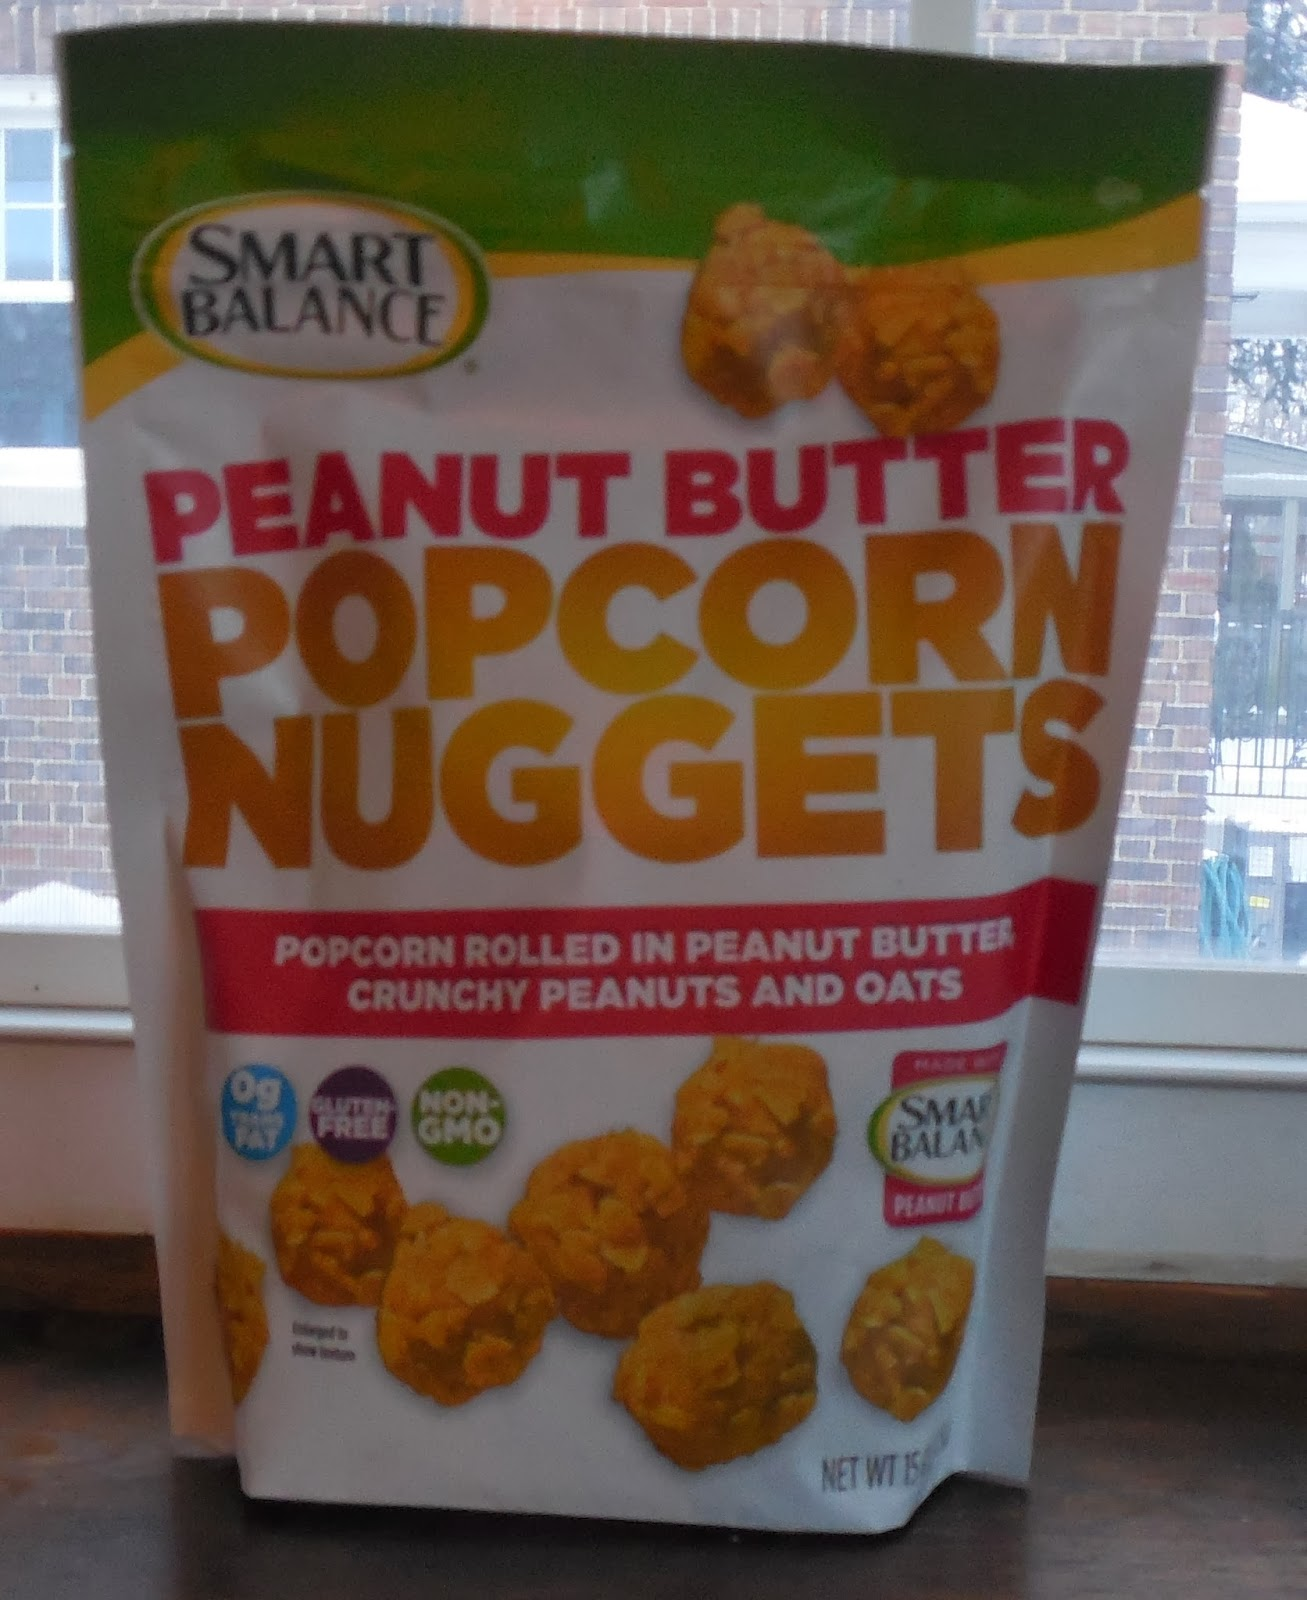 Smart Balance Peanut Butter Popcorn Nuggets